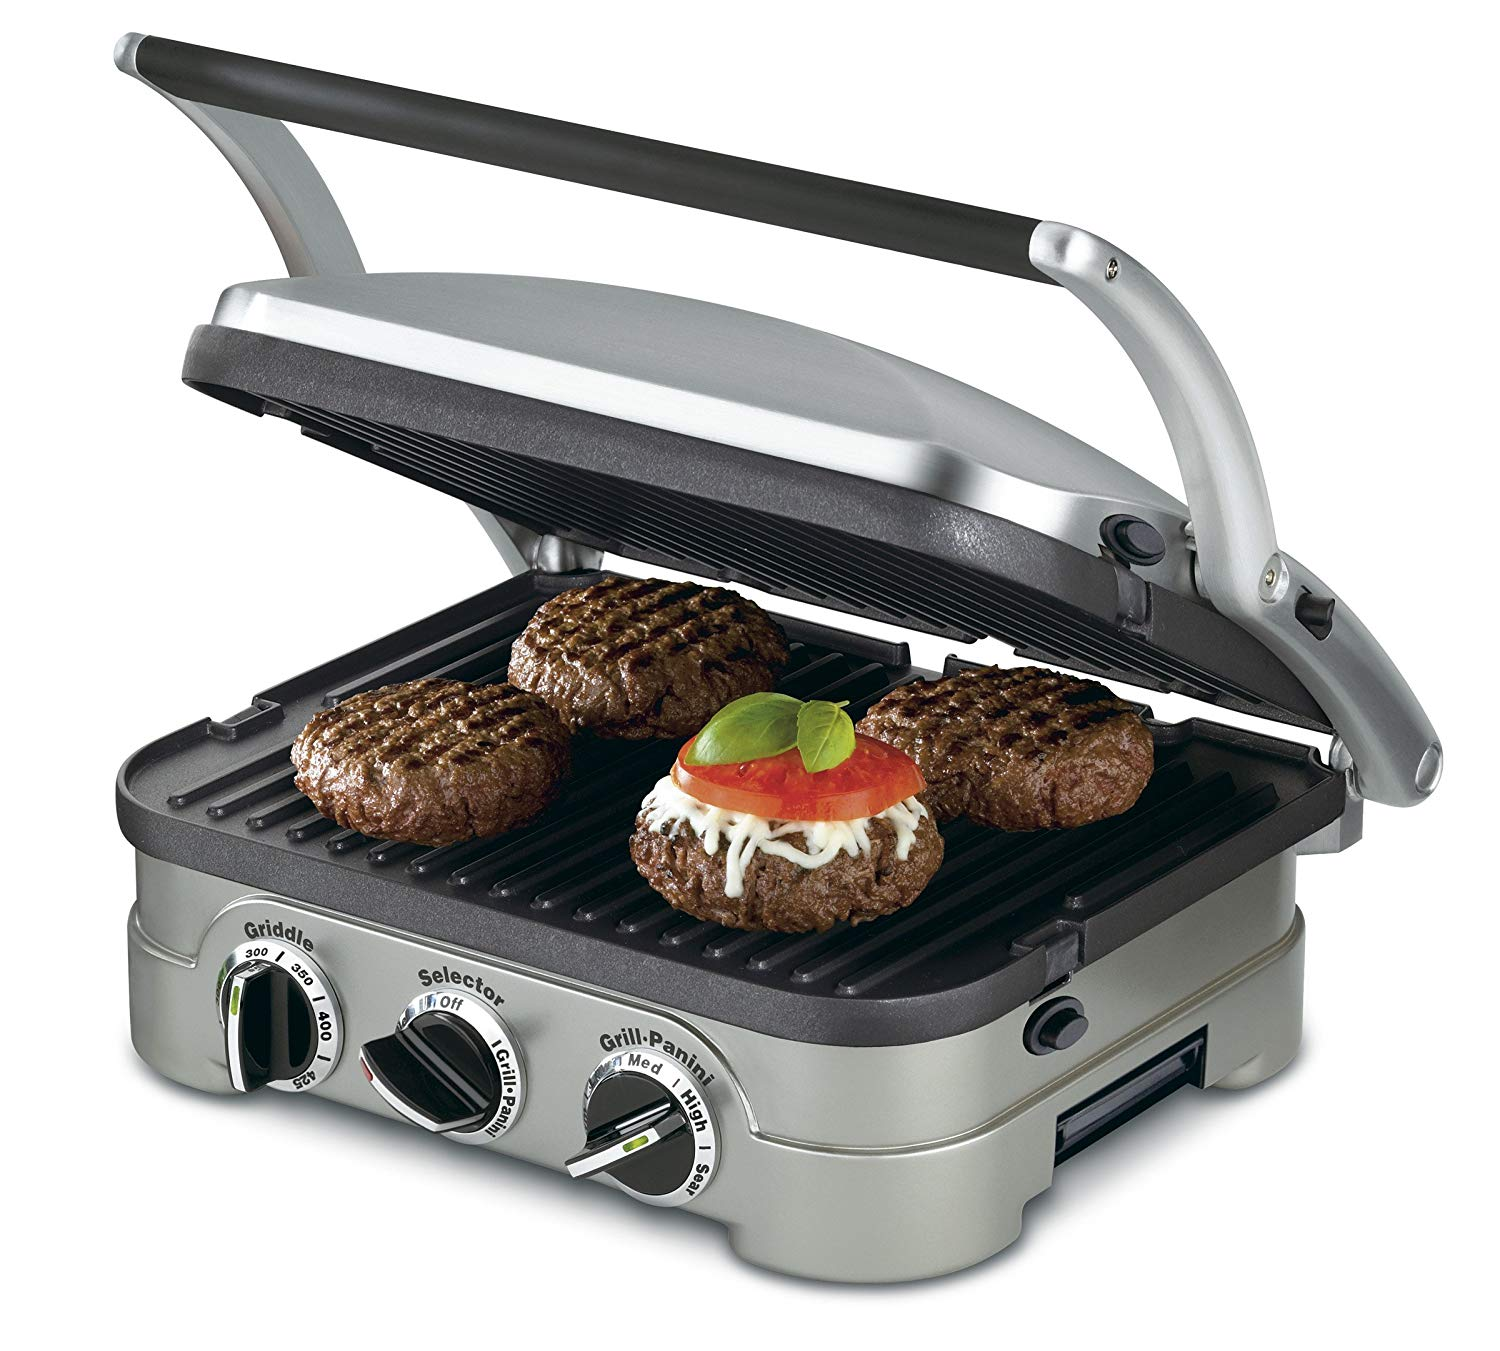 Cuisinart GR-4N 5-in-1 Griddler Review